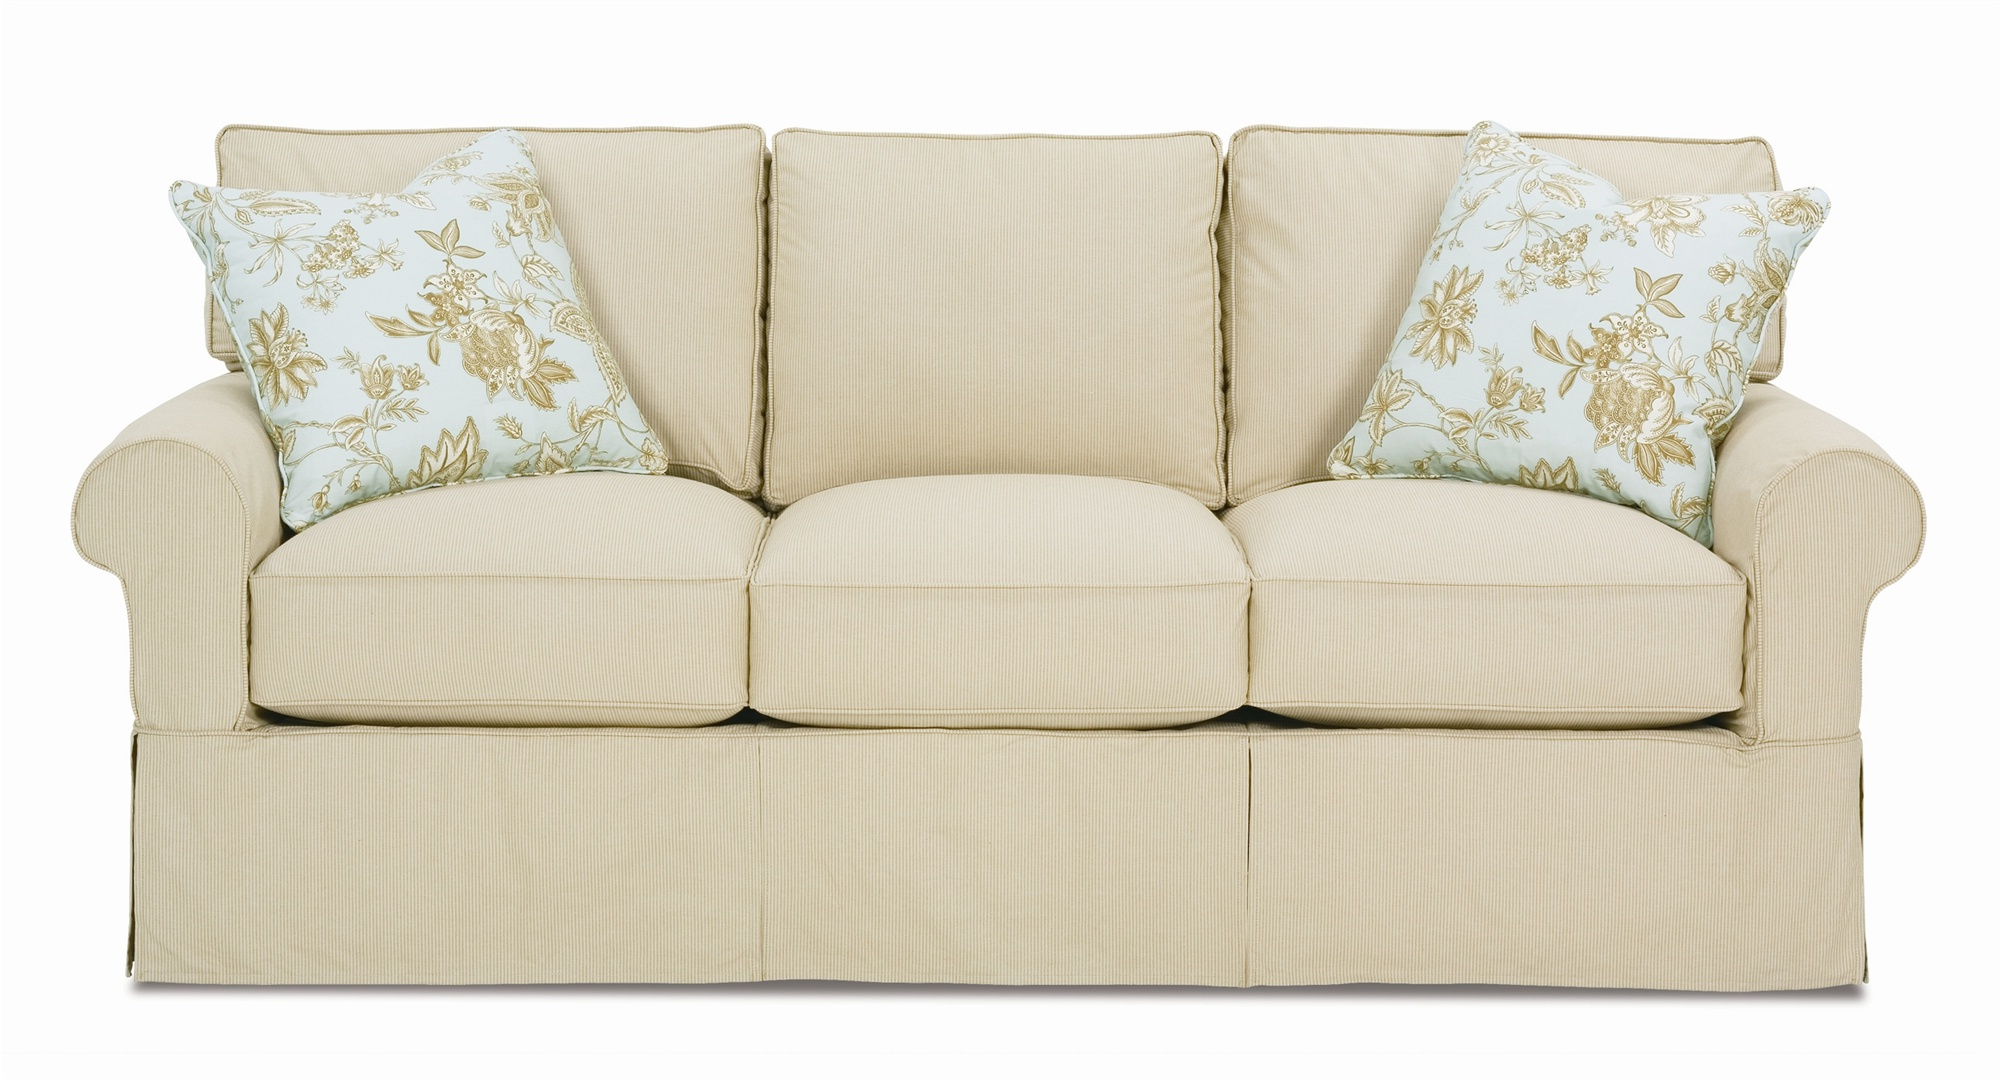 Chair Slipcovers Regarding Well Known Escondido Sofa Chairs (View 17 of 20)